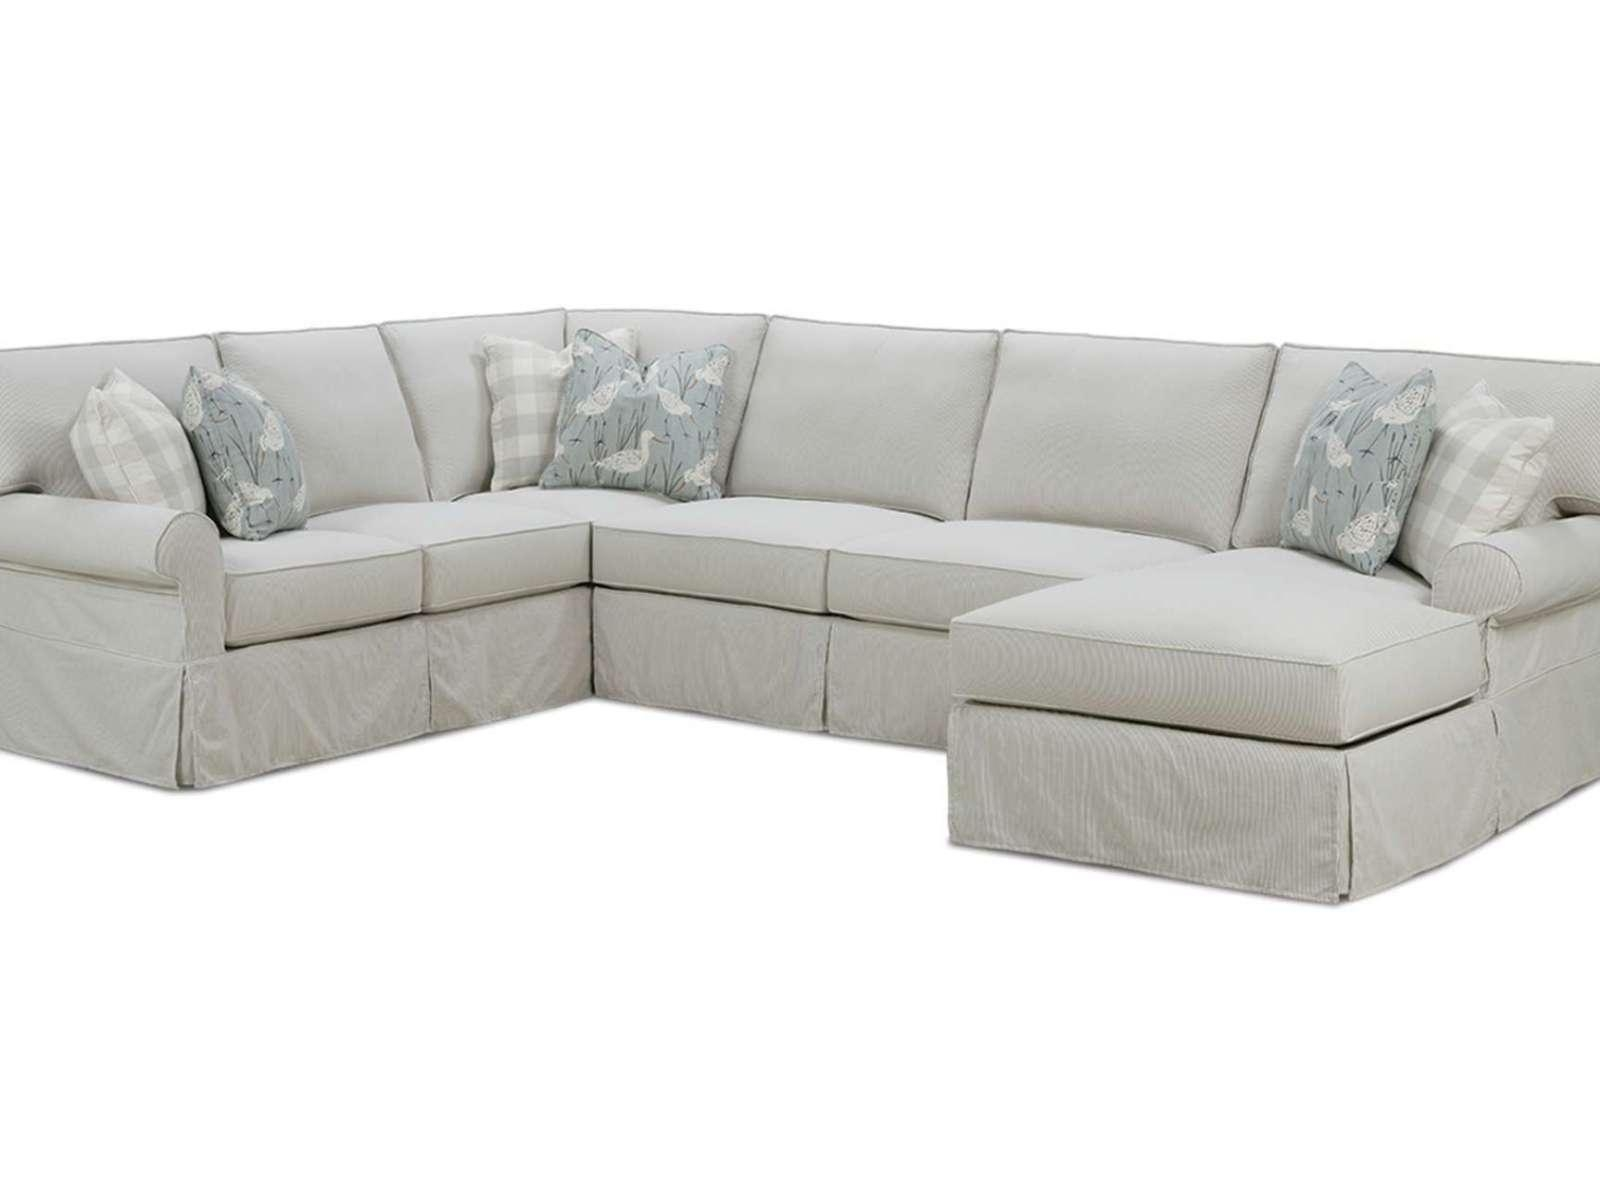 20 best ideas 3 piece sectional sofa slipcovers sofa ideas for 3 piece sectional sofa slipcovers